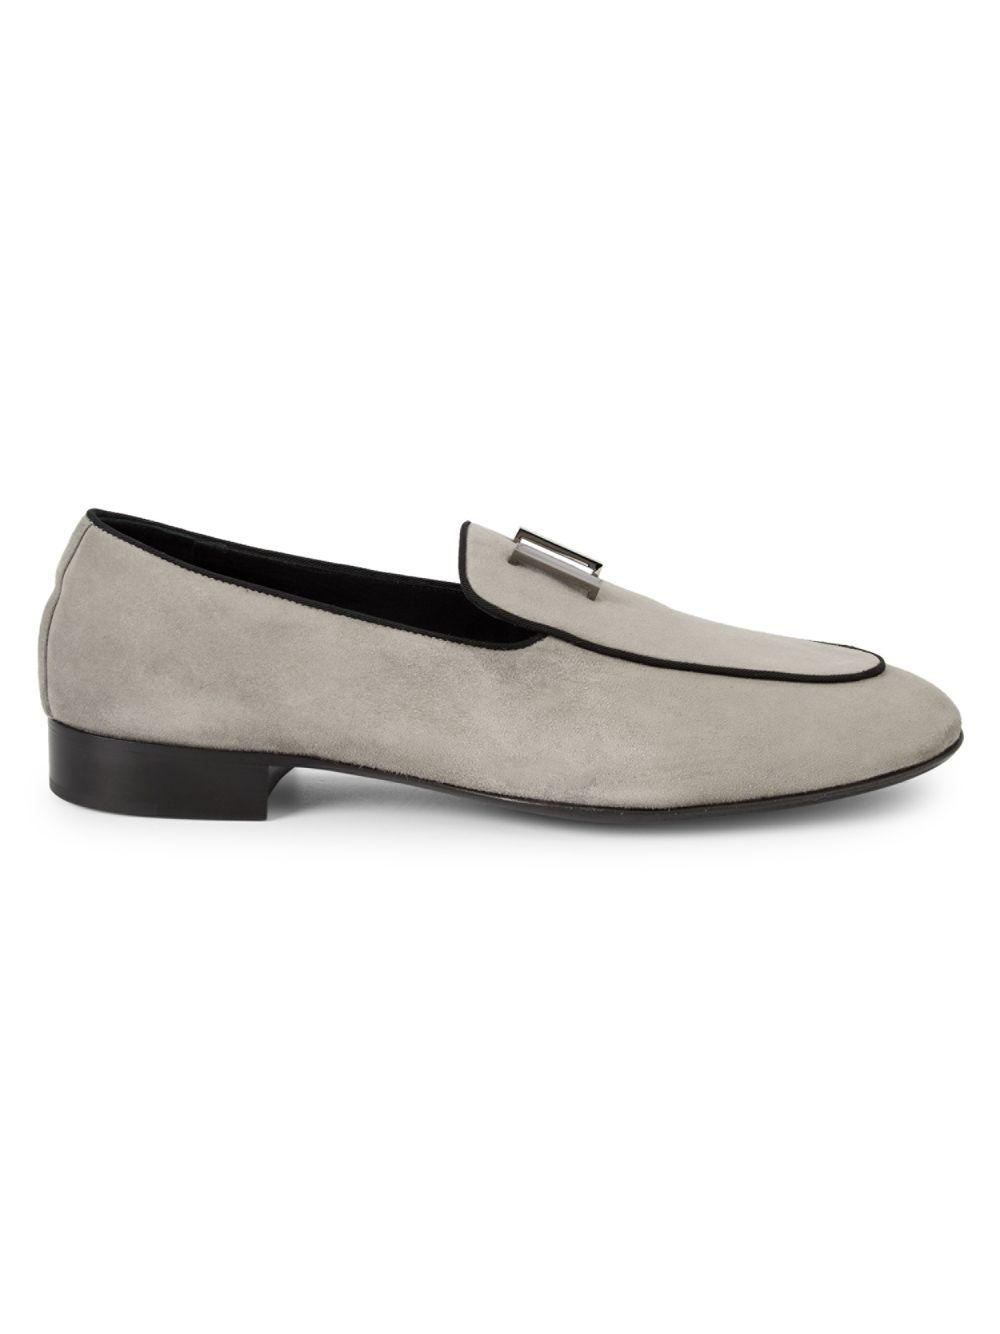 86be8156ad756 Lyst - Giuseppe Zanotti Bar Suede Loafers in Gray for Men